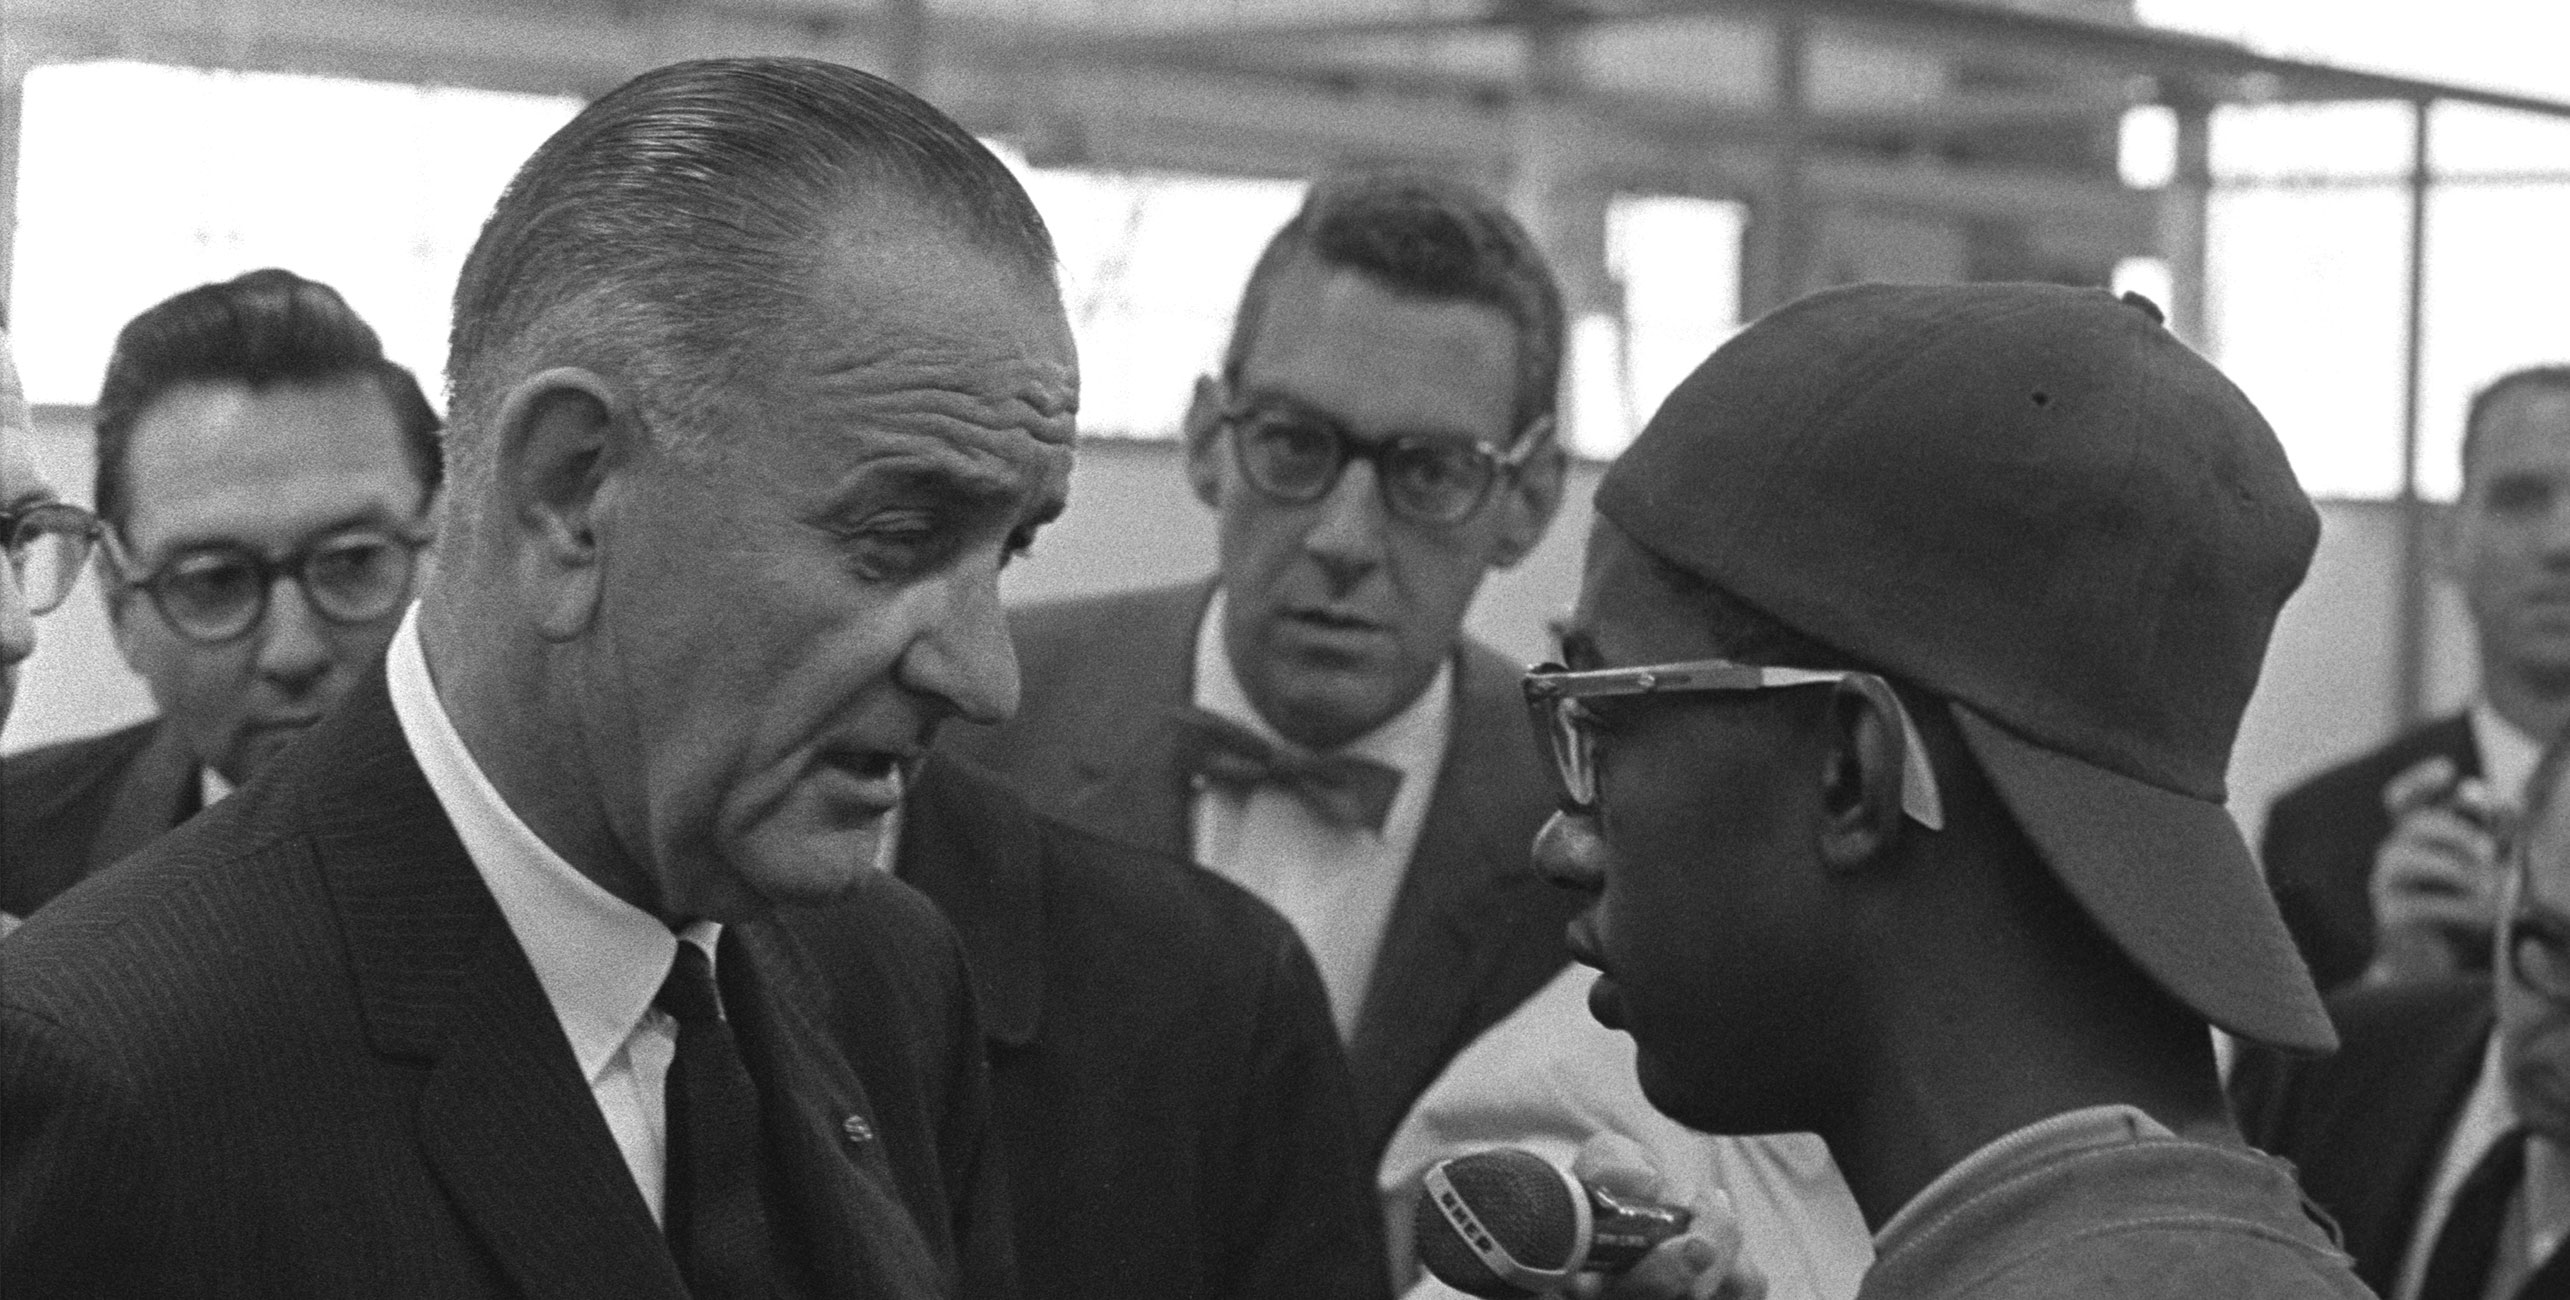 President Lyndon Johnson speaking with Gary Job Corps student